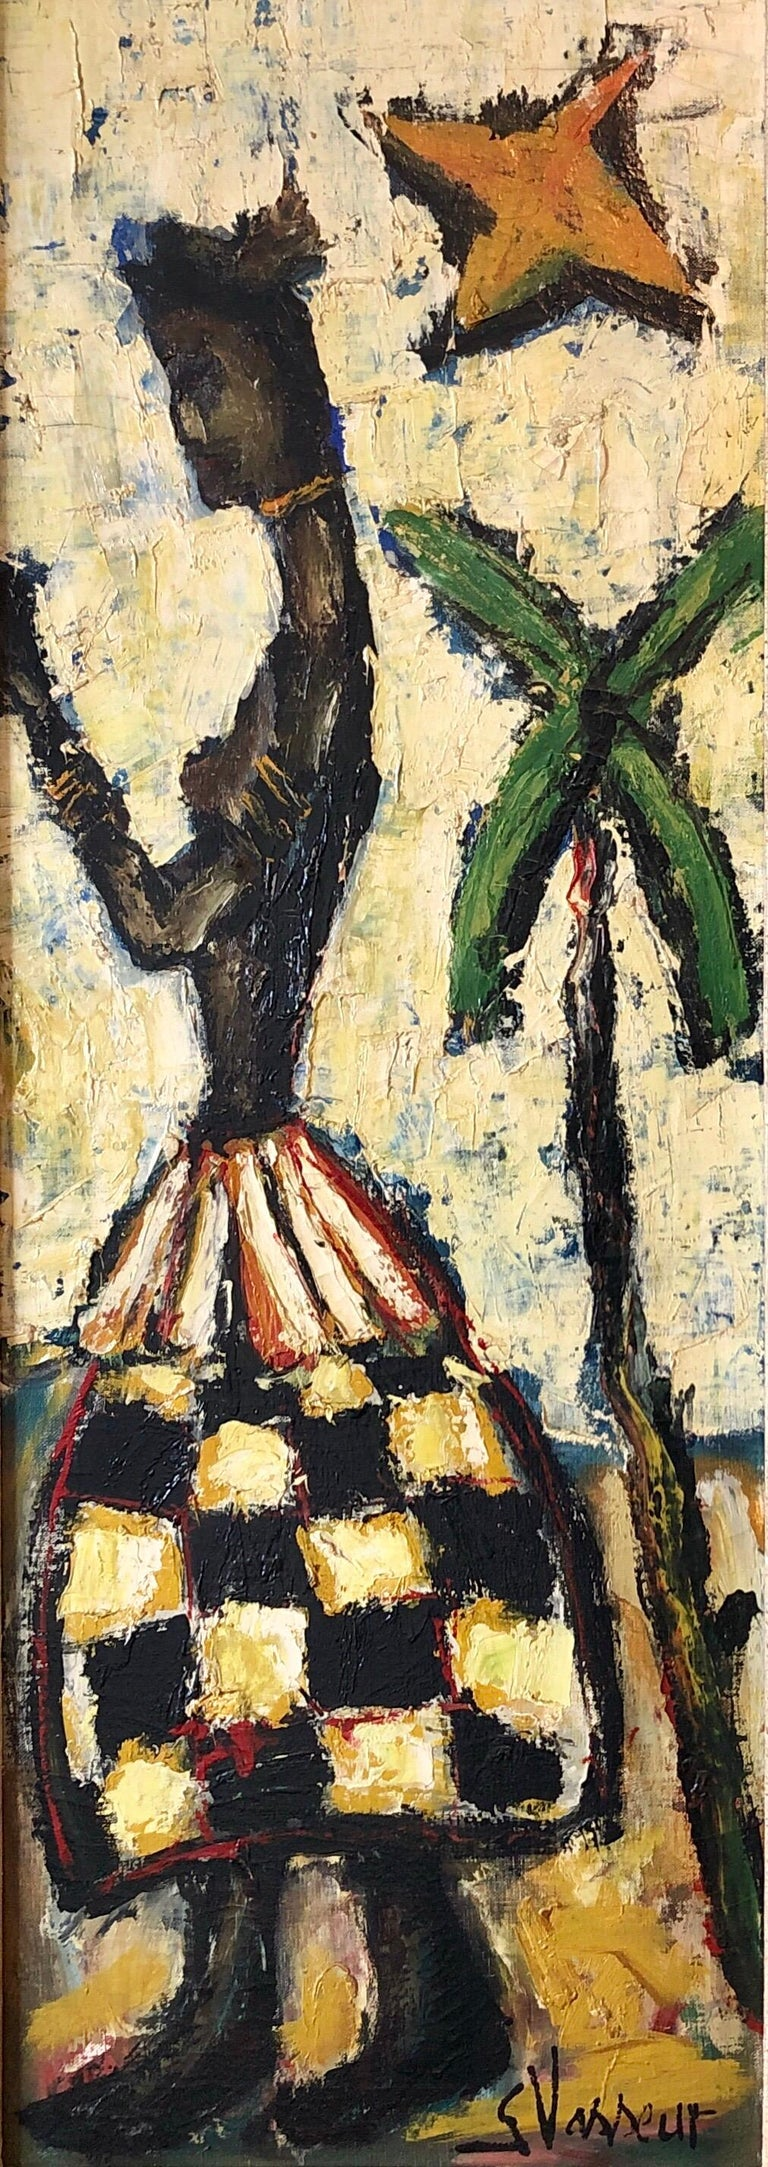 French Expressionist Impasto Oil Painting African Island Girl Kente Cloth Skirt - Beige Nude Painting by Georges Vasseur